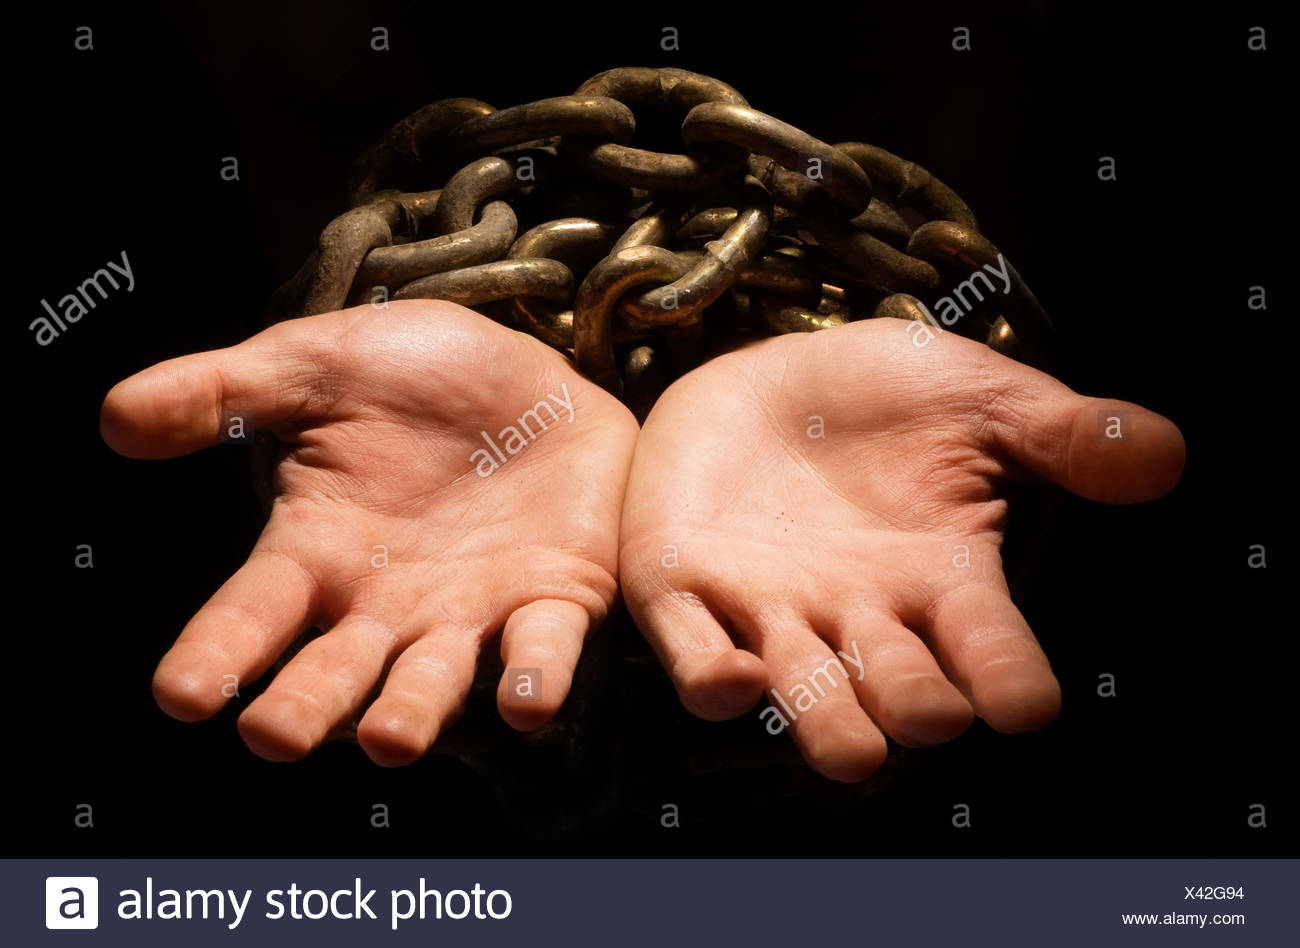 Chained hands - Stock Image